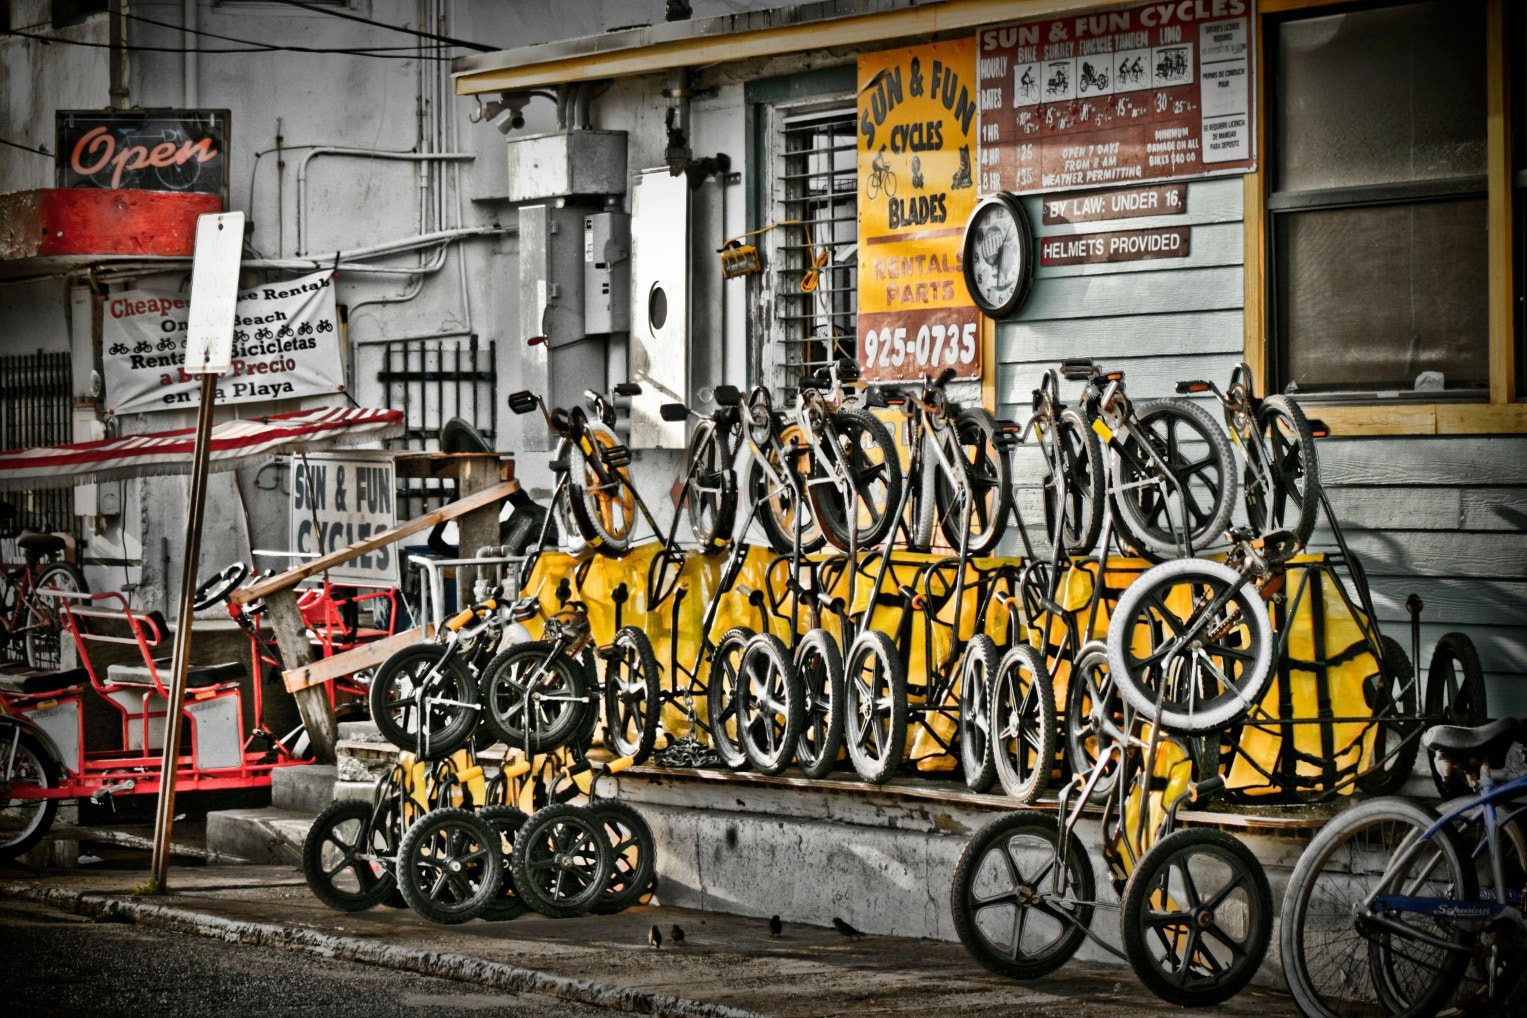 Photograph Bicycle Shop by Raul Frontal on 500px